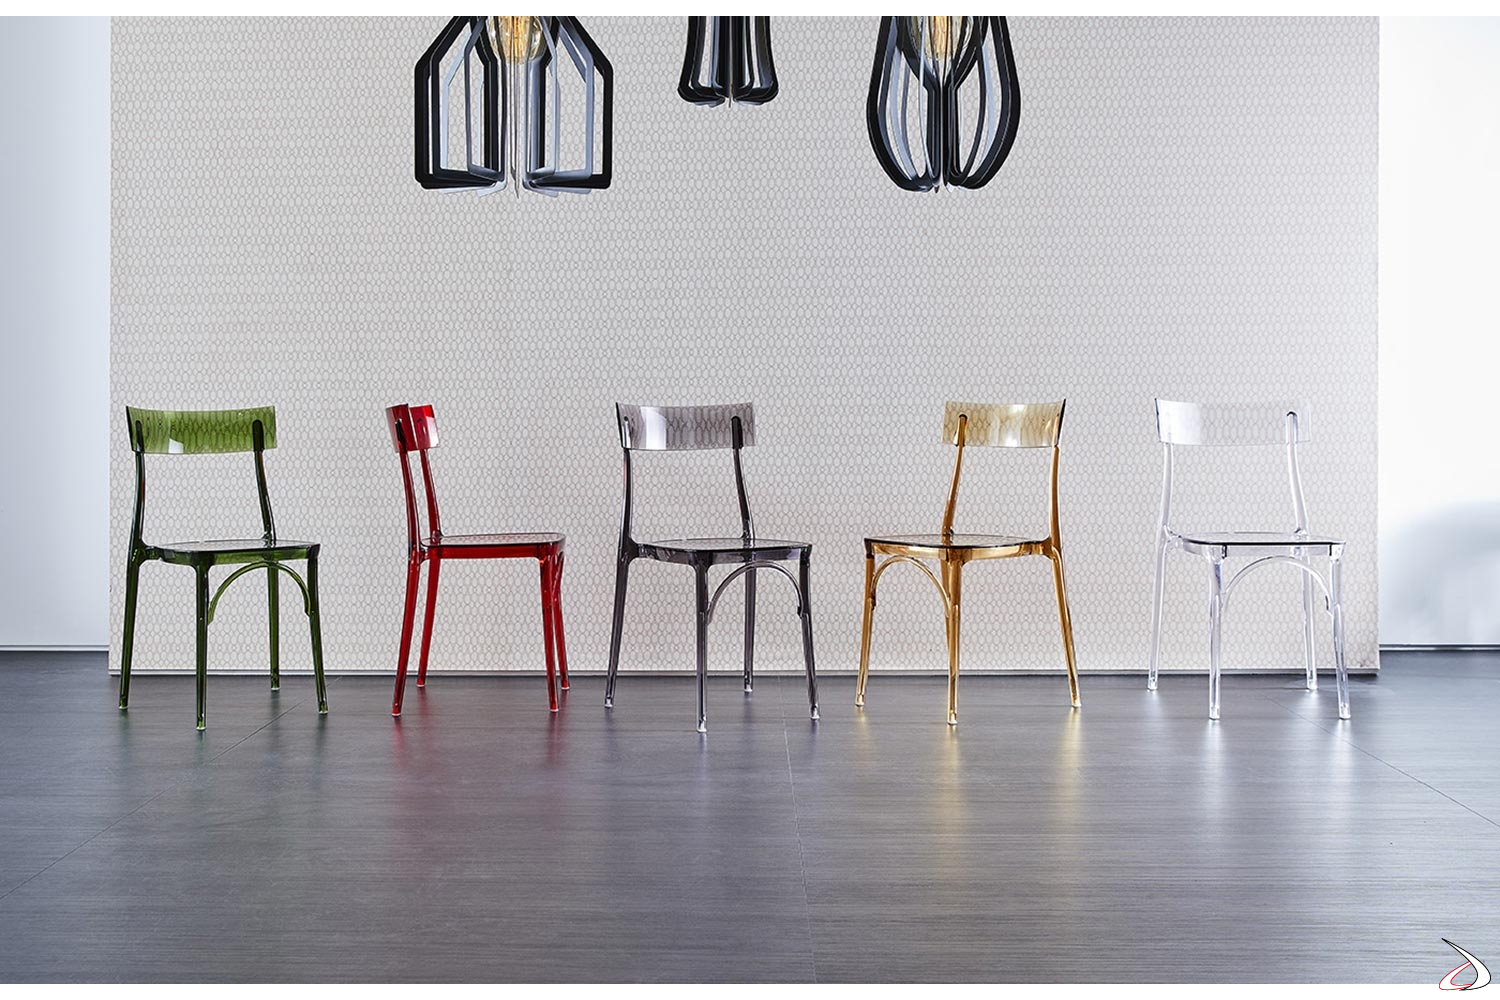 Sedie Policarbonato Trasparente Colorate.Milano2015 Chair For Kitchens And Living Rooms Toparredi